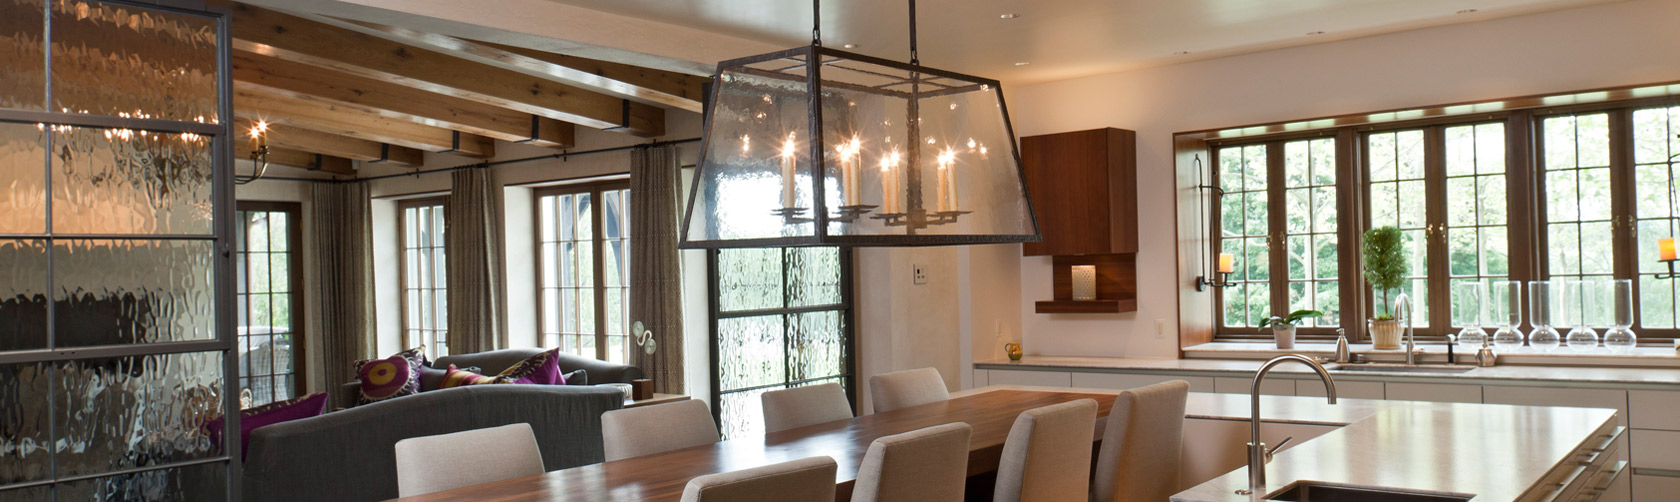 owingsbrothers kitchen remodeling baltimore Baltimore Home Building Remodeling We Specialize in Any Interior or Exterior Renovations Including Bath Remodeling Kitchen Remodeling Home Additions